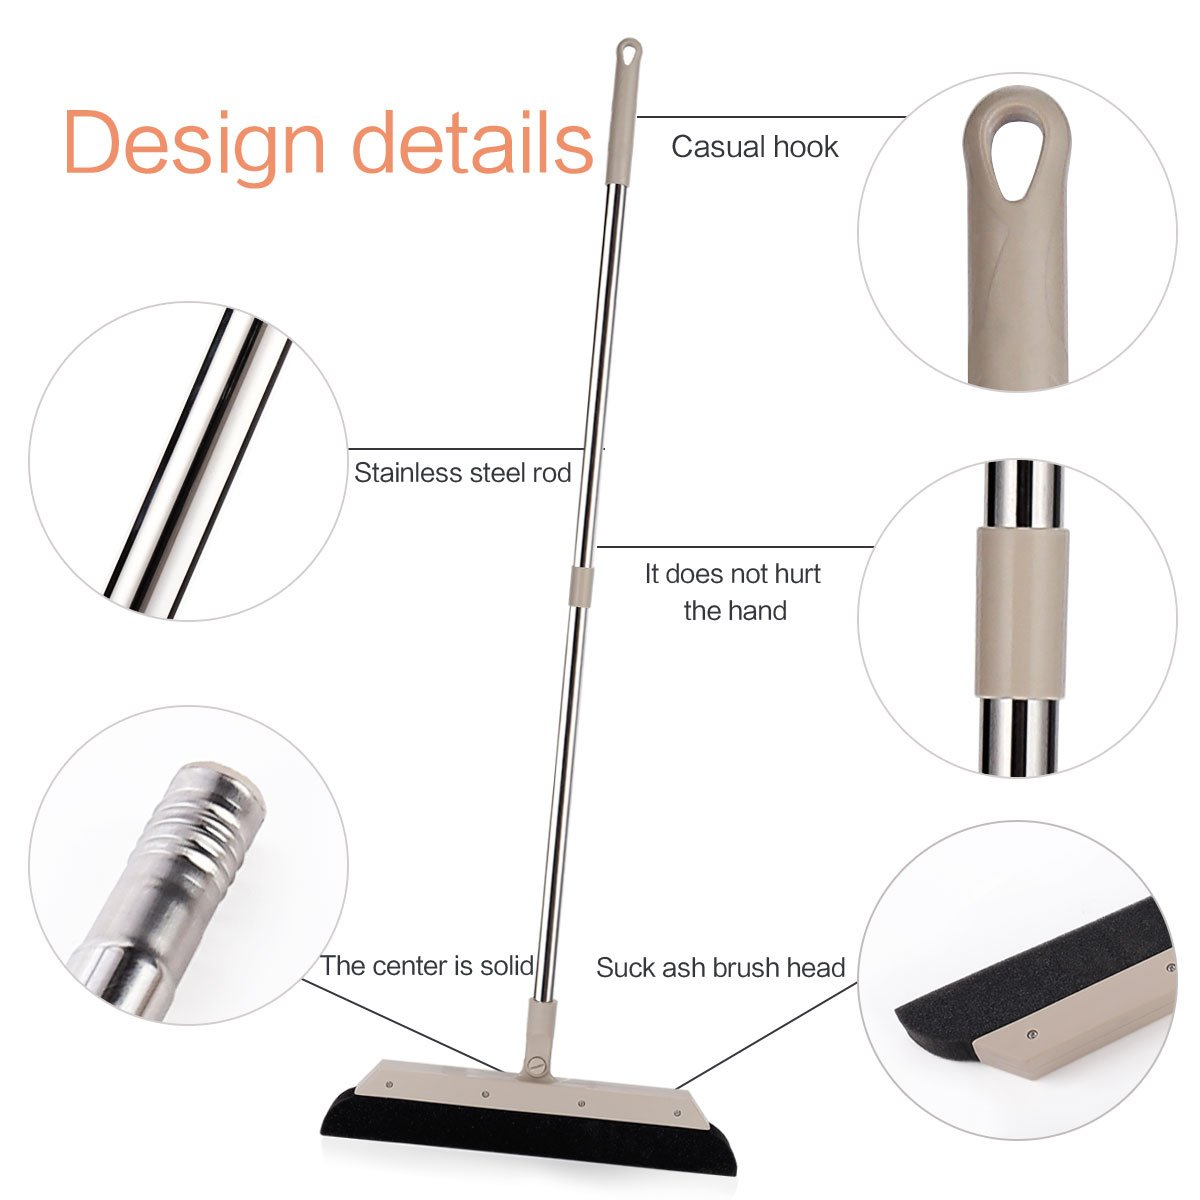 MEIBEI Sponge Broom Dust Cleaner, 37.4'' Adjustable Long Handle with 13.8'' Wide Blade, Perfect for Wood Tile Marble Carpet & Glass by MEIBEI (Image #4)